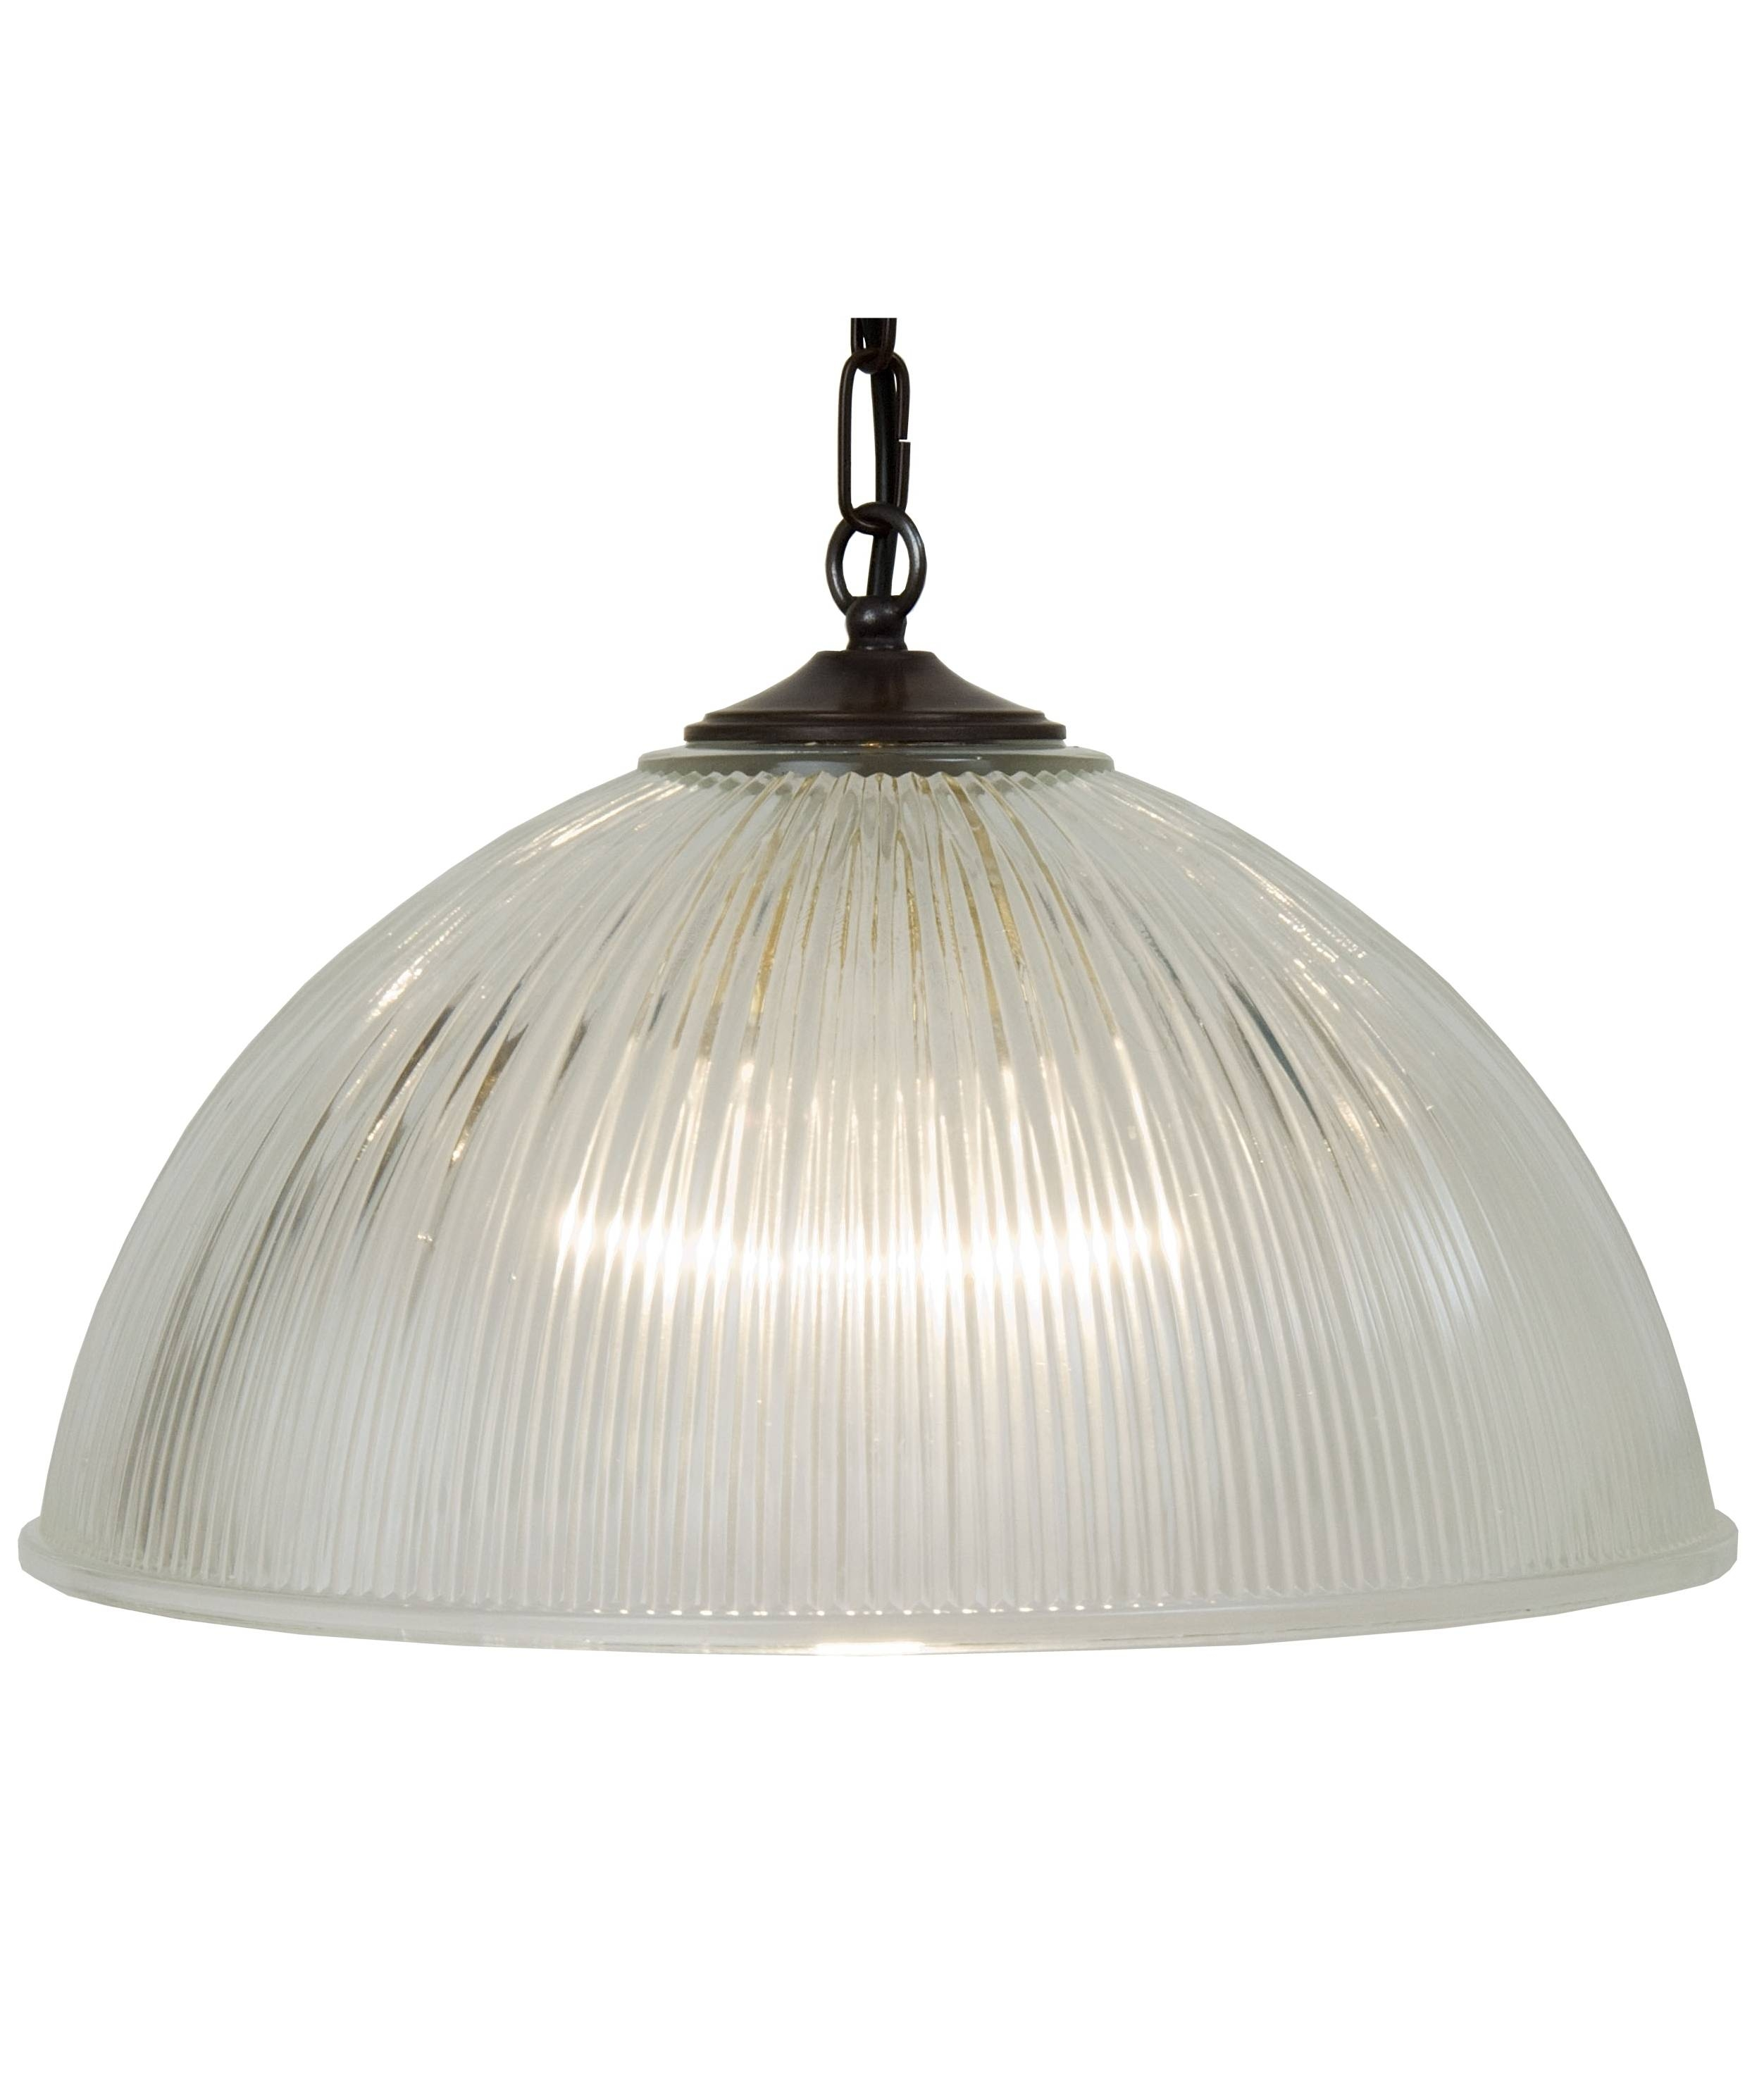 Traditional Ribbed Glass Ceiling Light On Chain Suspension In 2 Sizes within Large Dome Pendant Lights (Image 14 of 15)